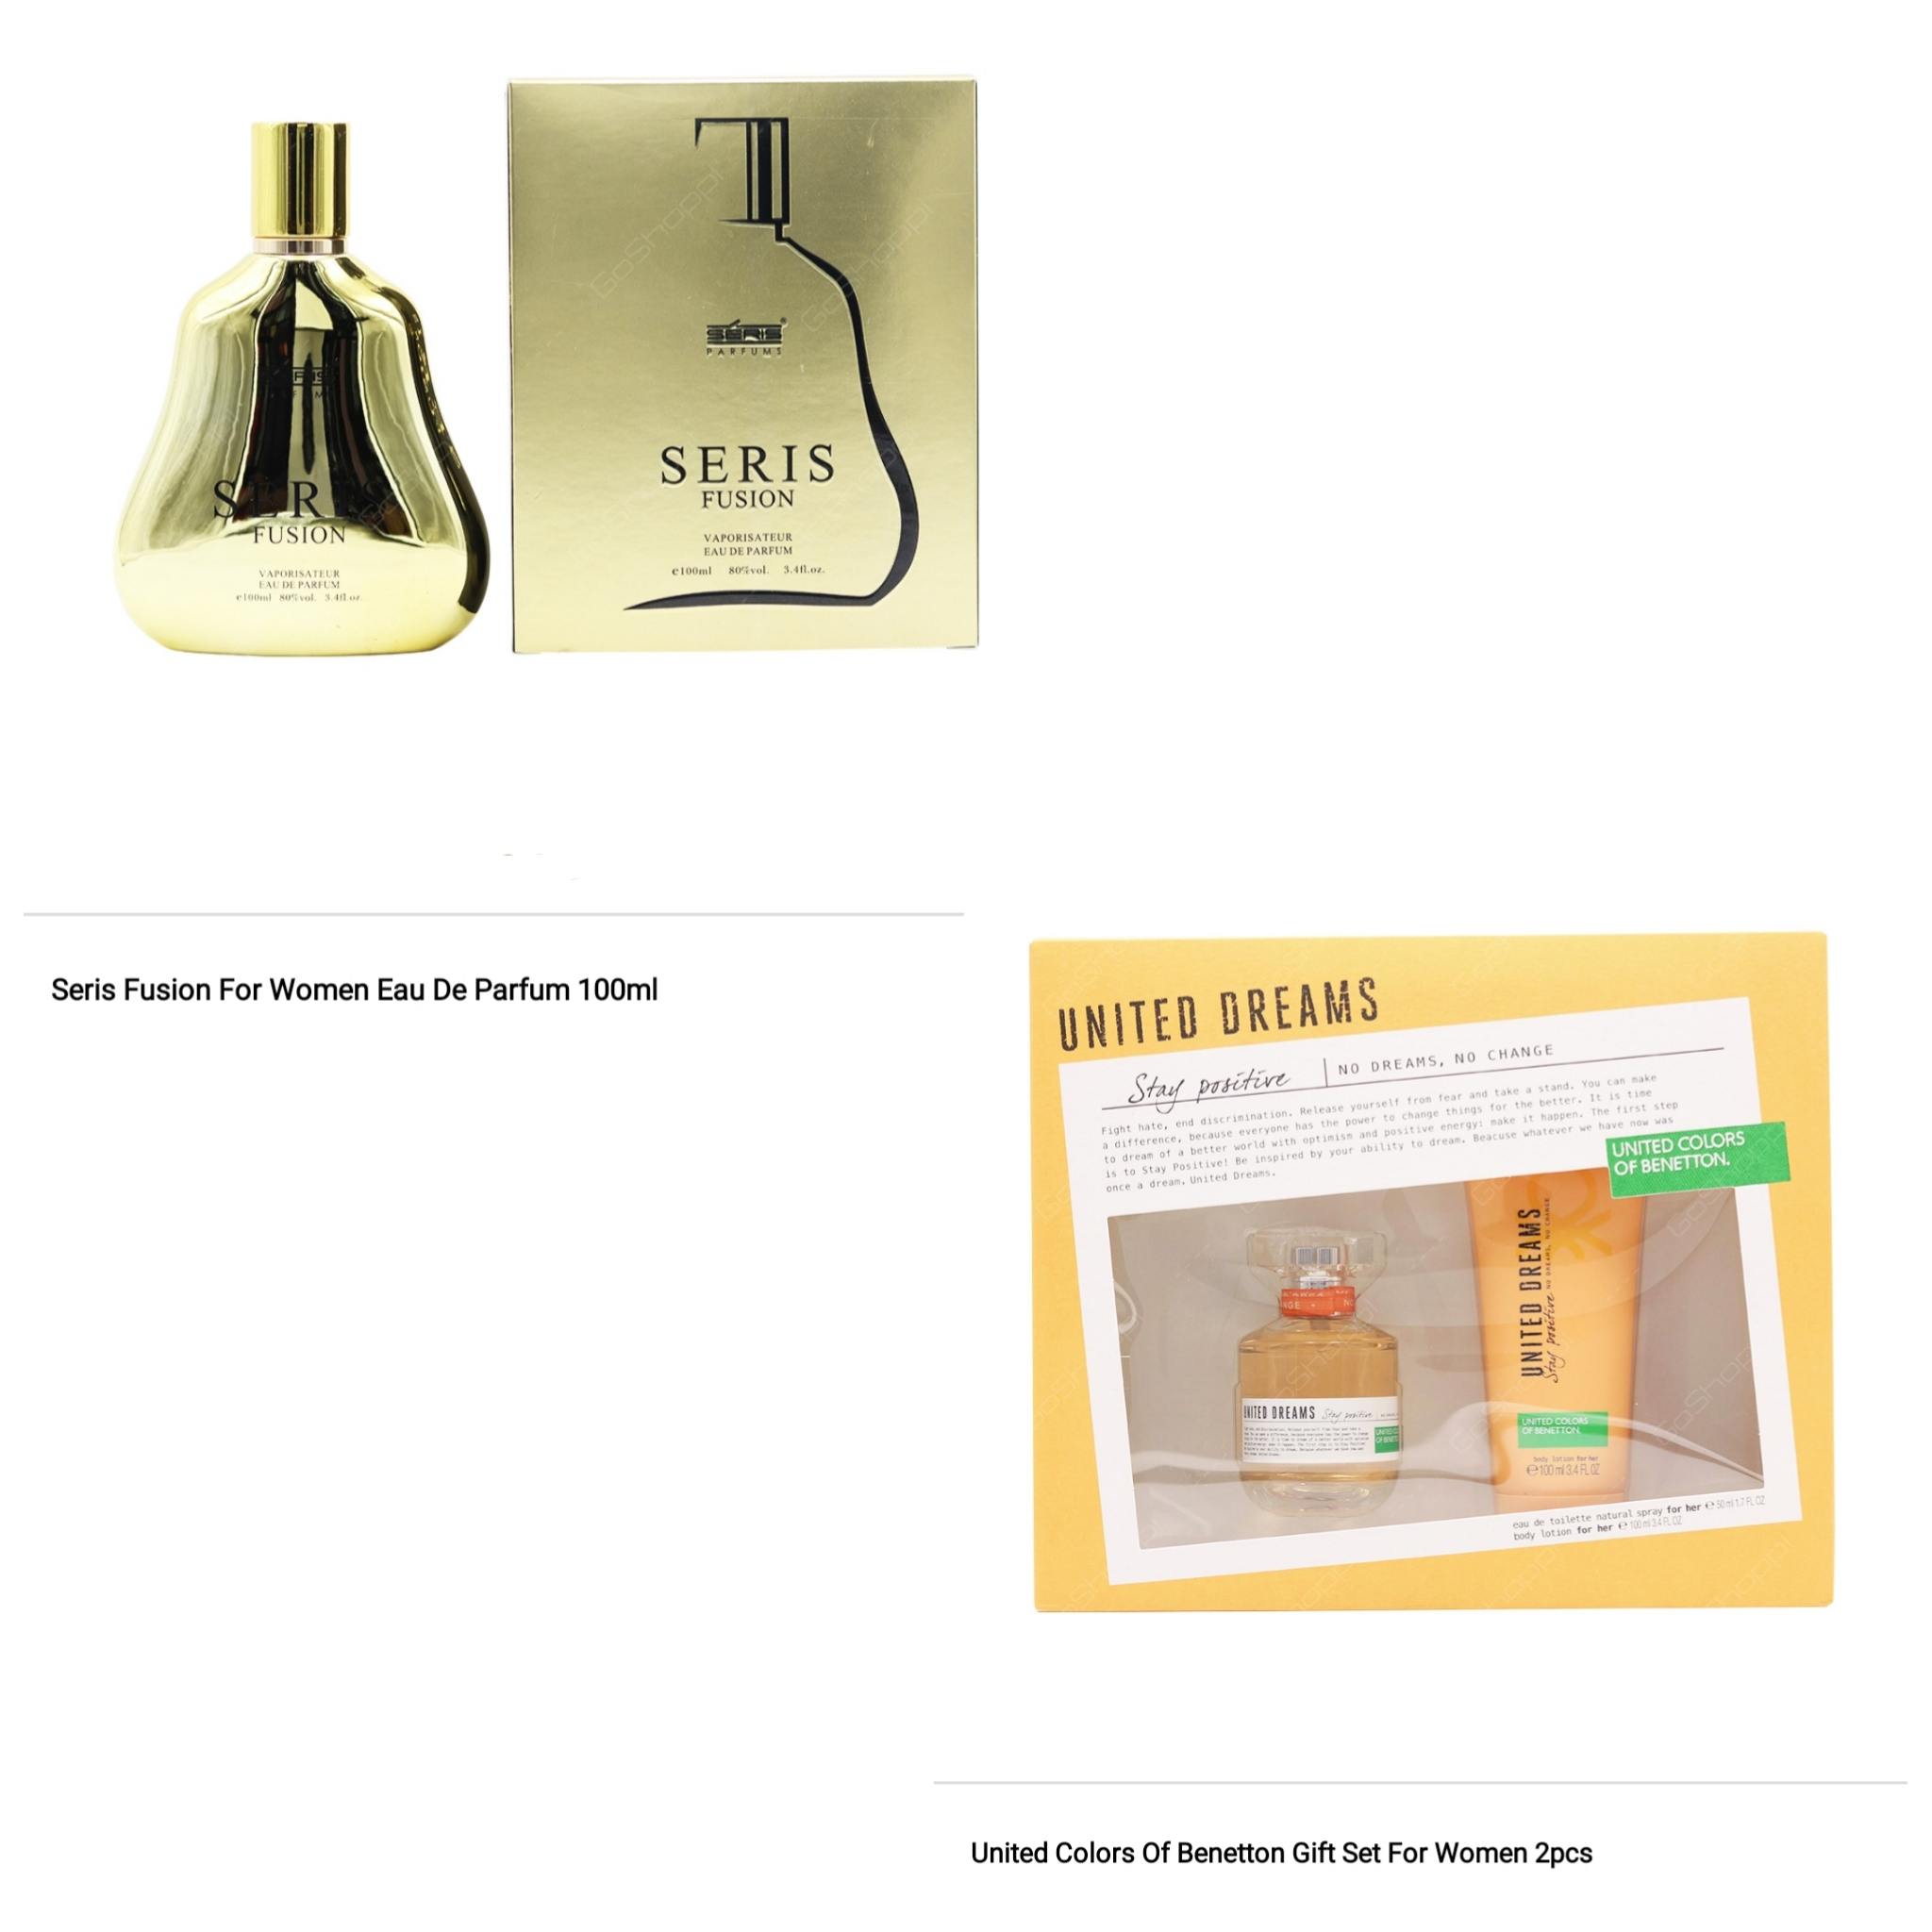 Seris Fusion 100ml and United Colors Of Benetton Gift Sets Combo Offer